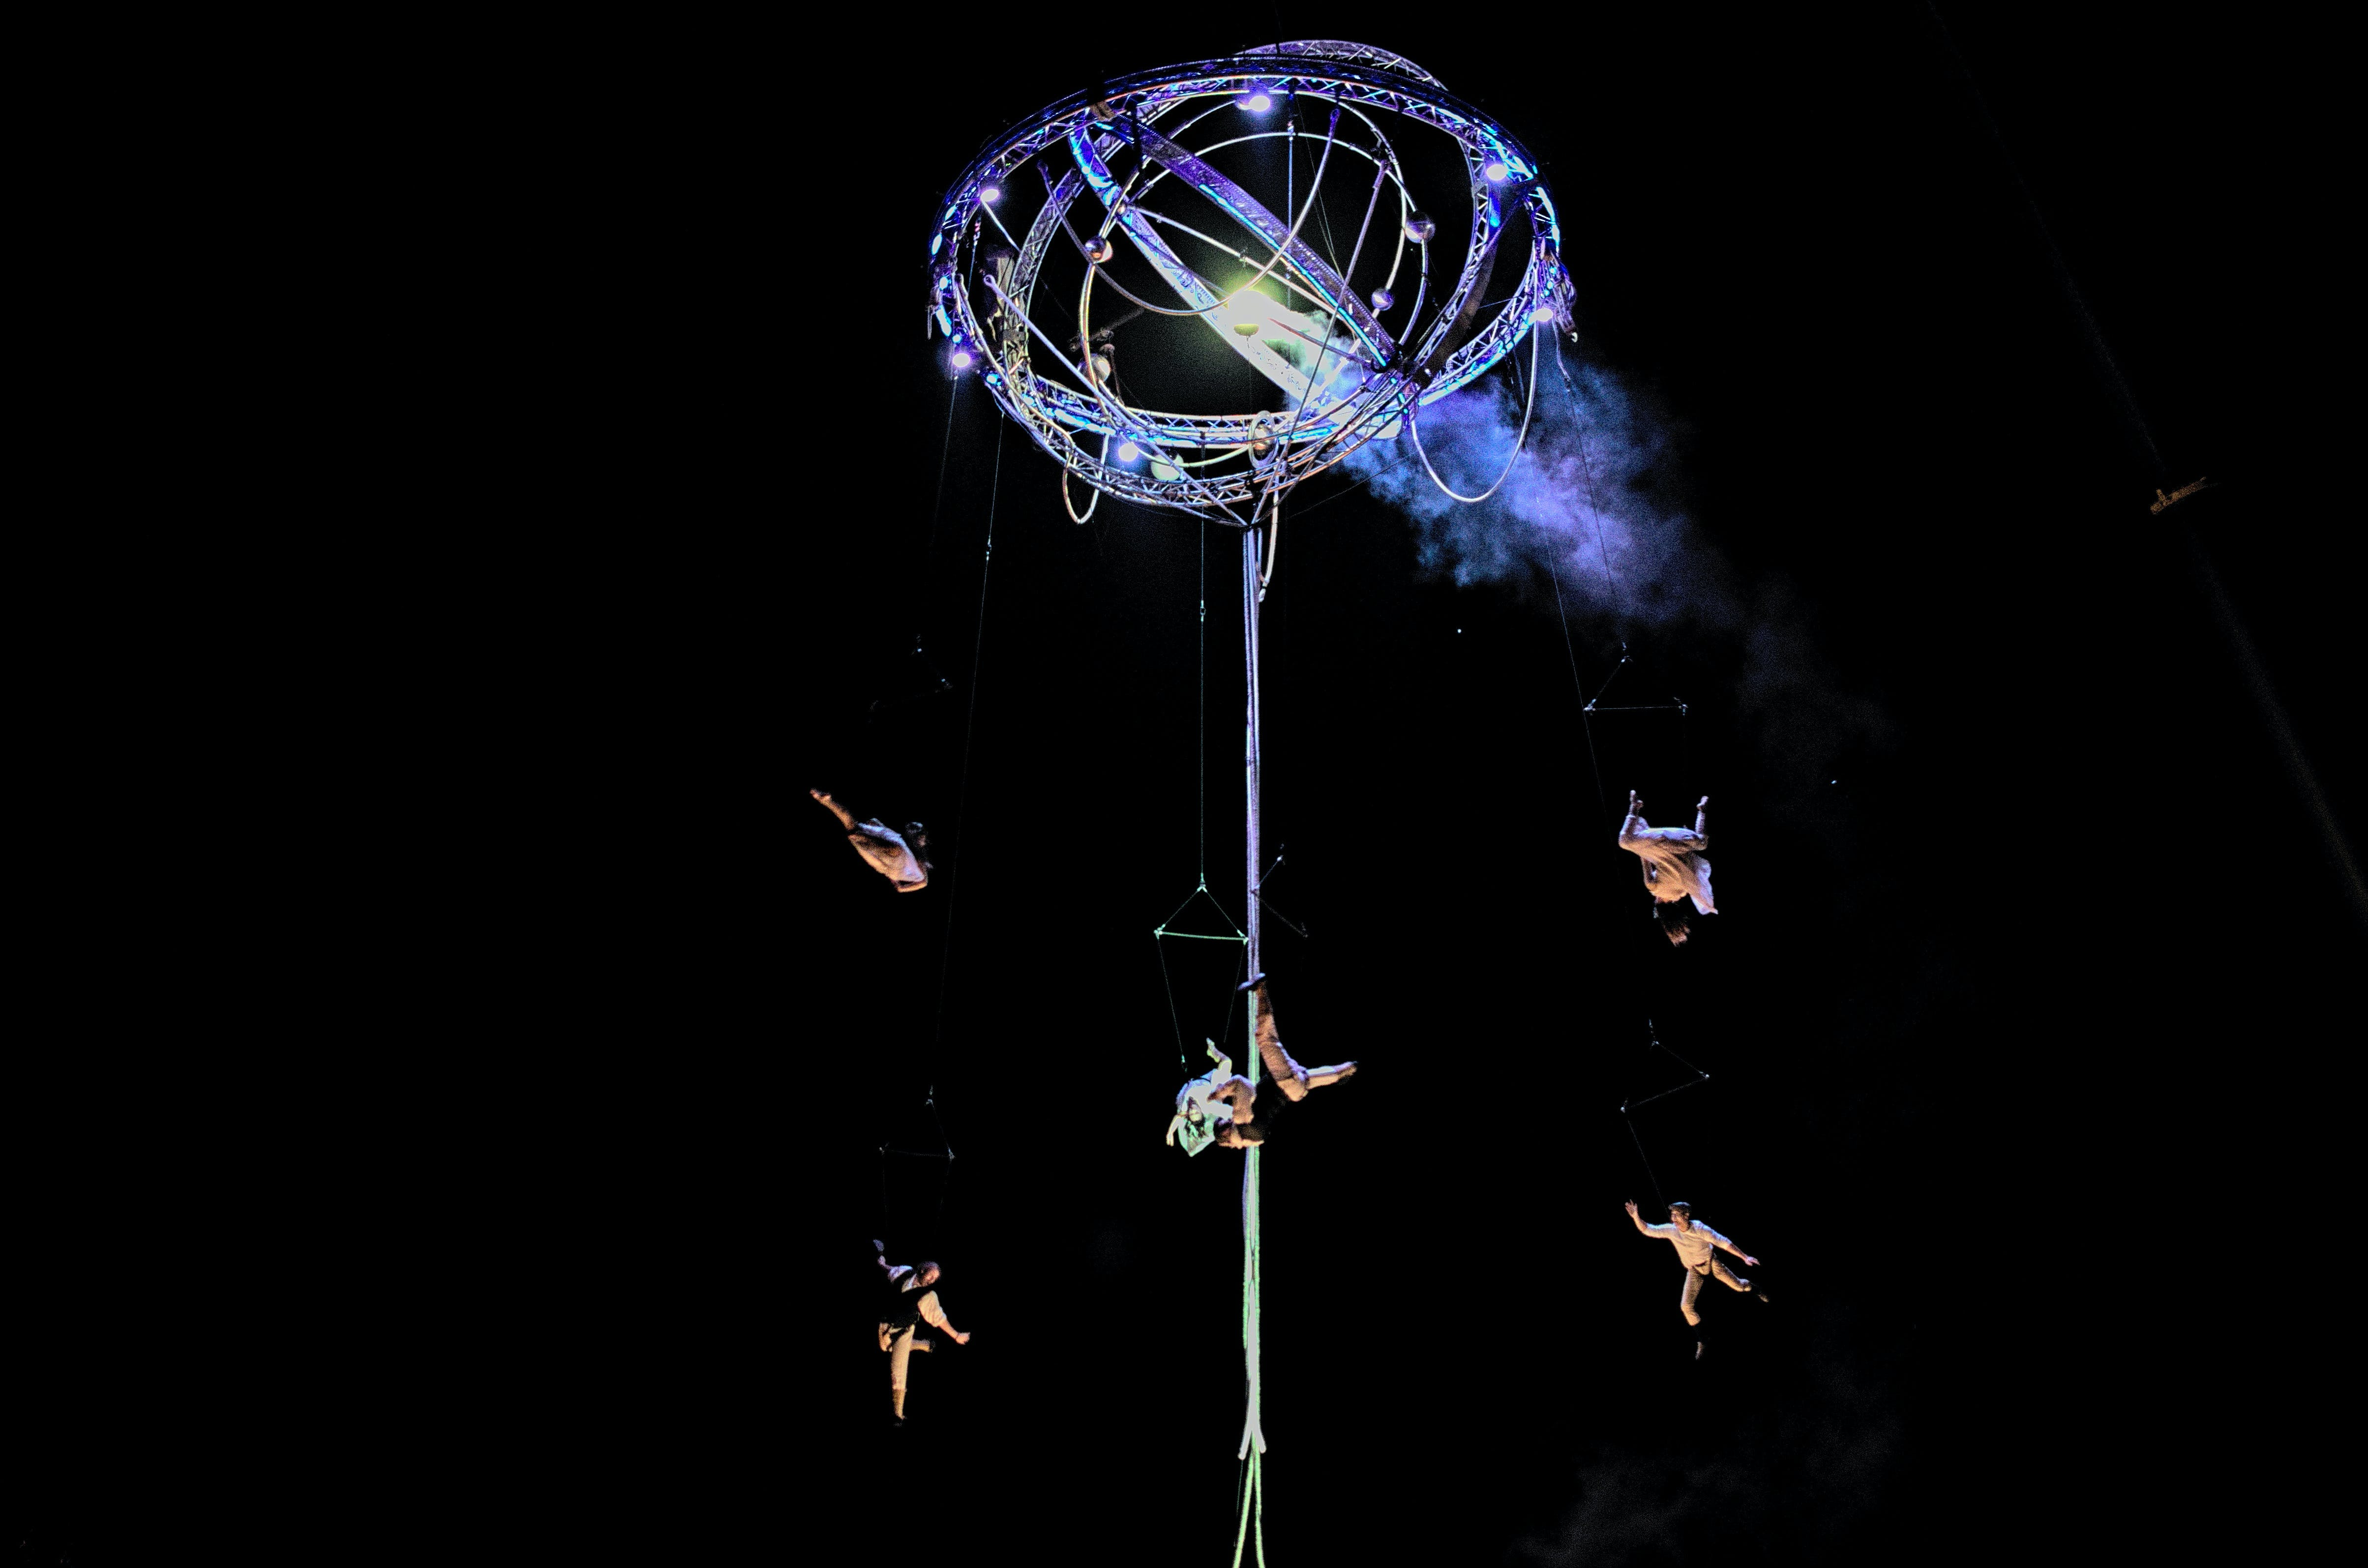 Acrobats Performing on Tower